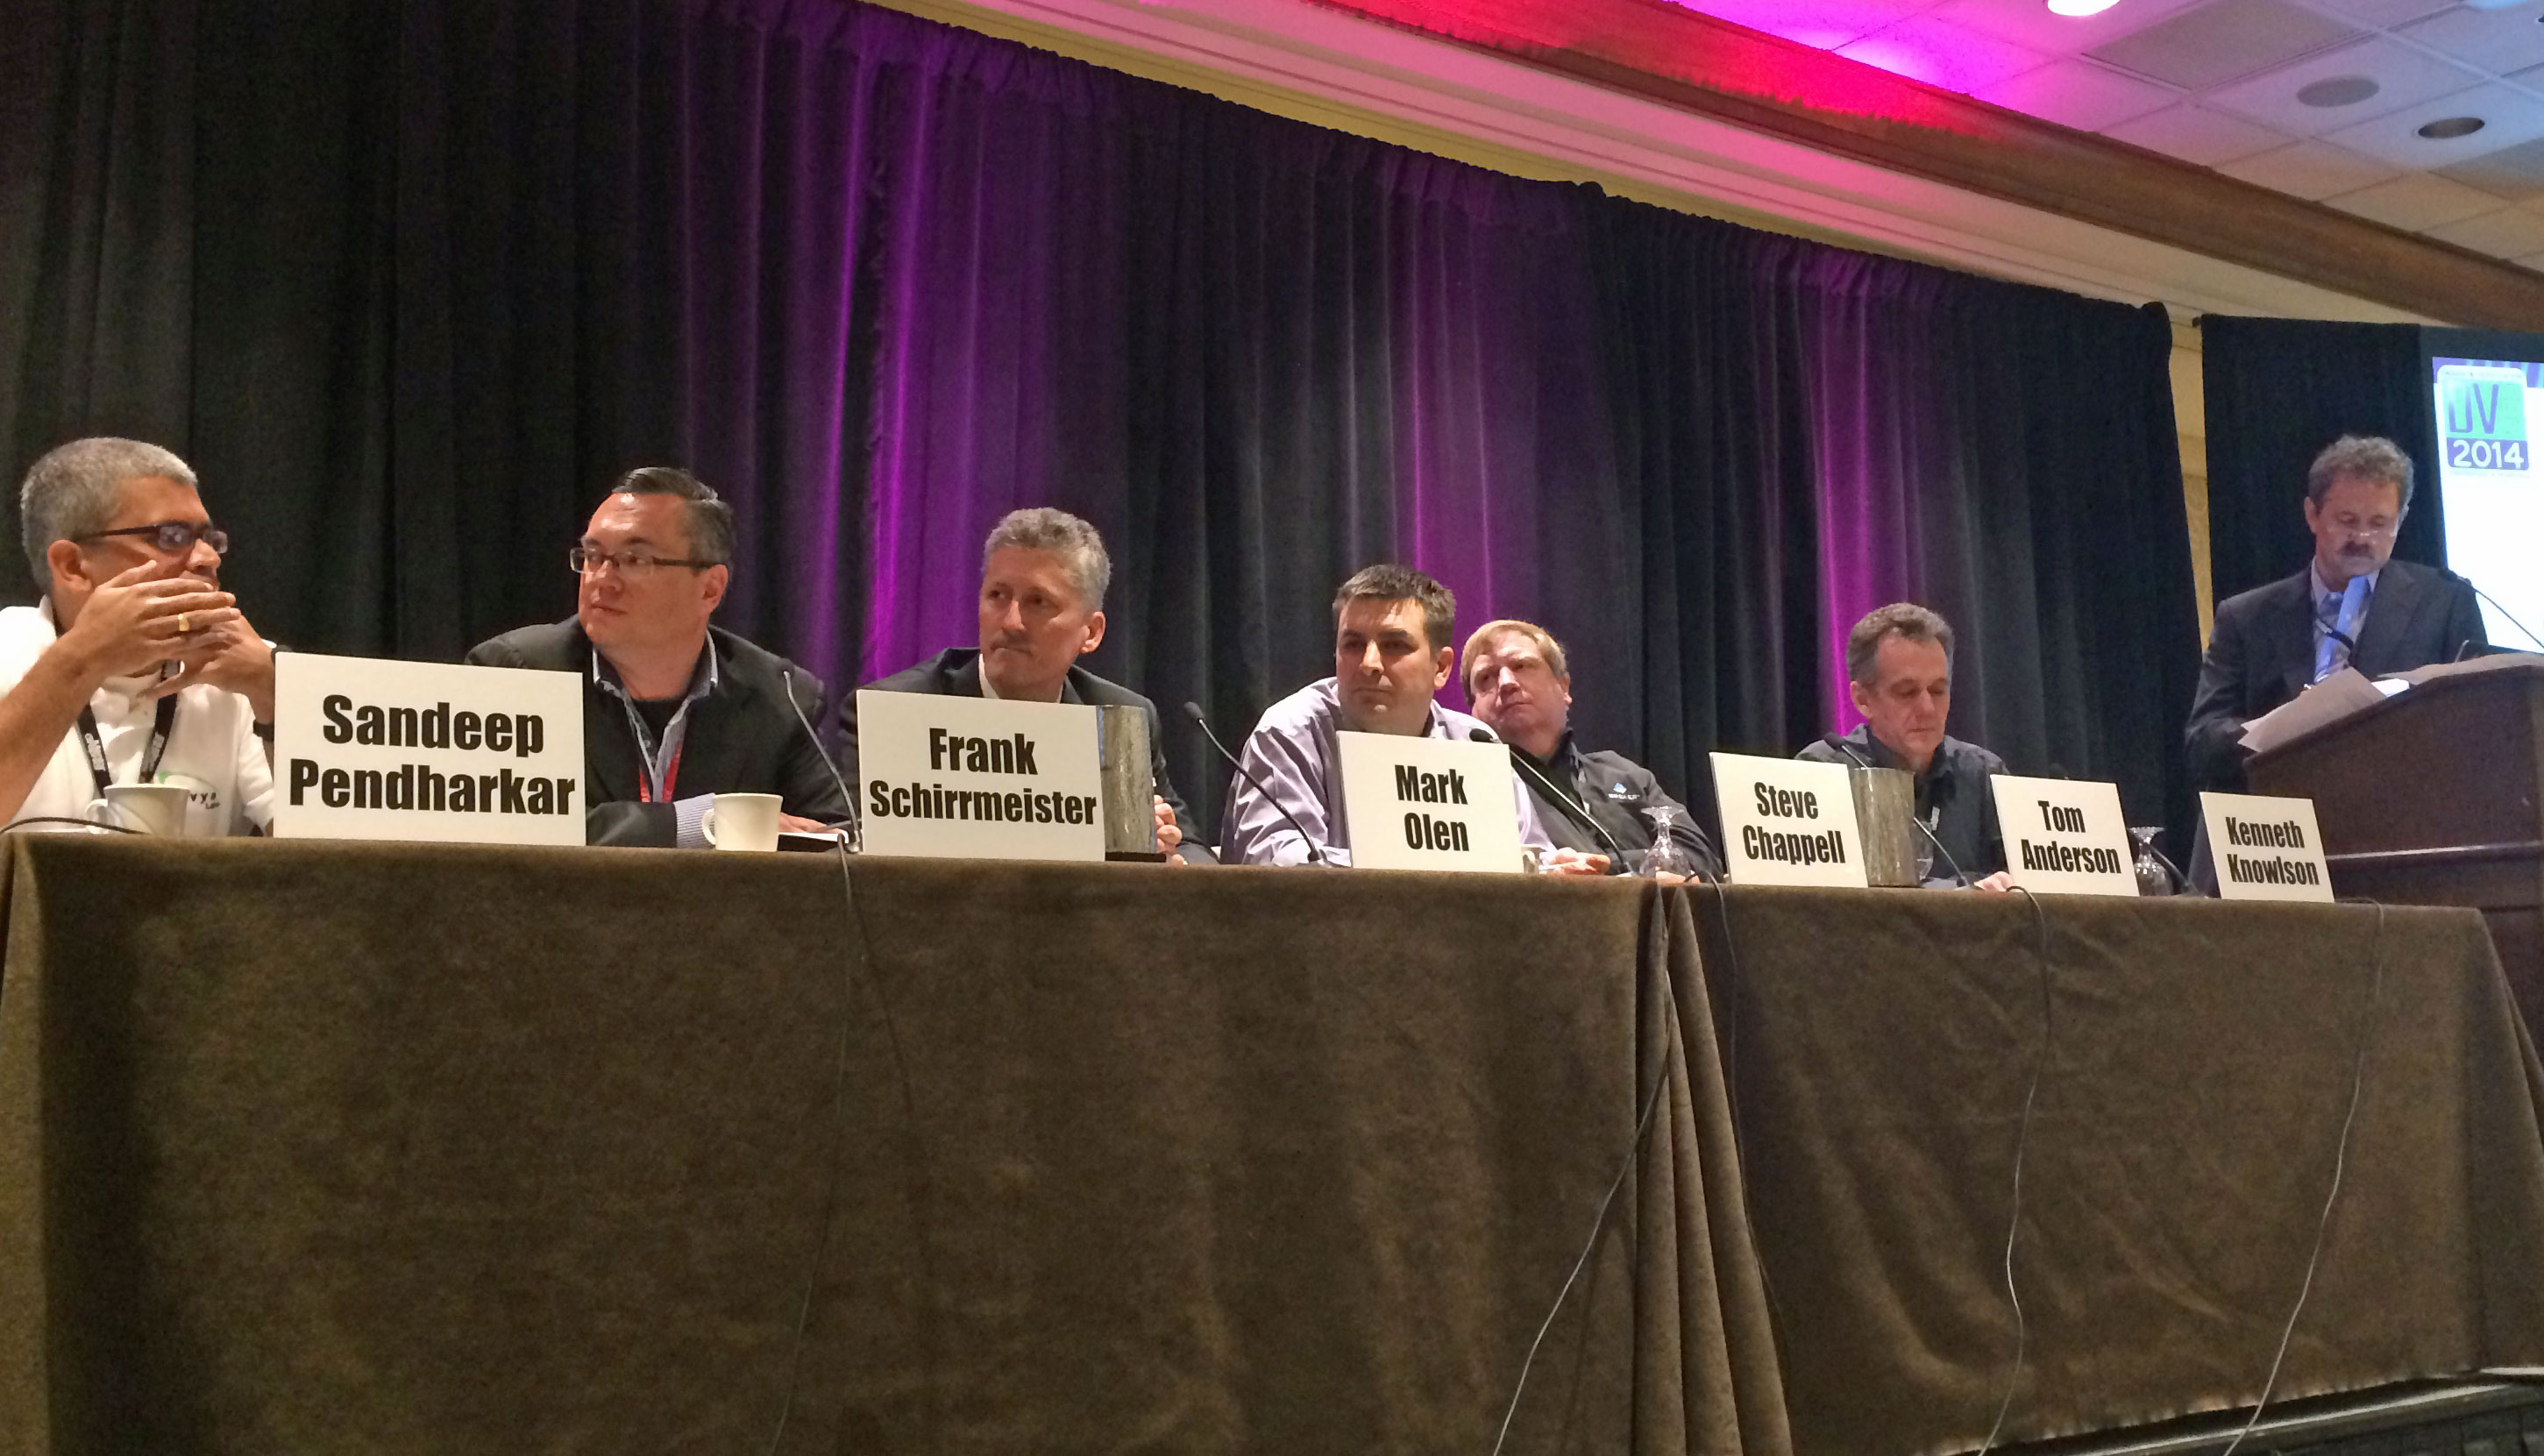 DVCon 2014 software and verification panel